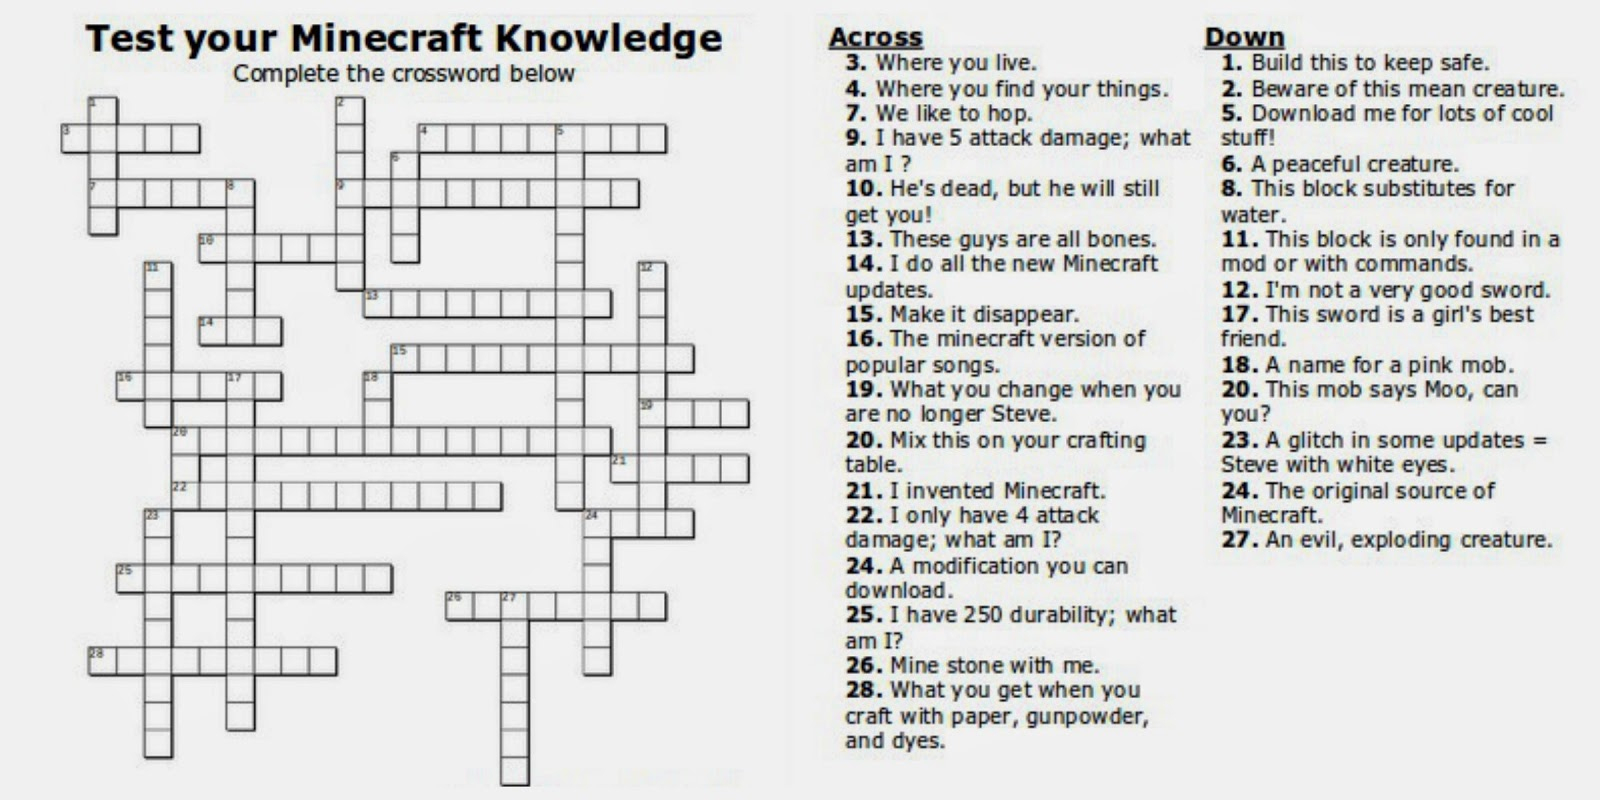 Free Printable Minecraft Crossword Search: Test Your Minecraft - Printable Crossword Puzzles For Tweens